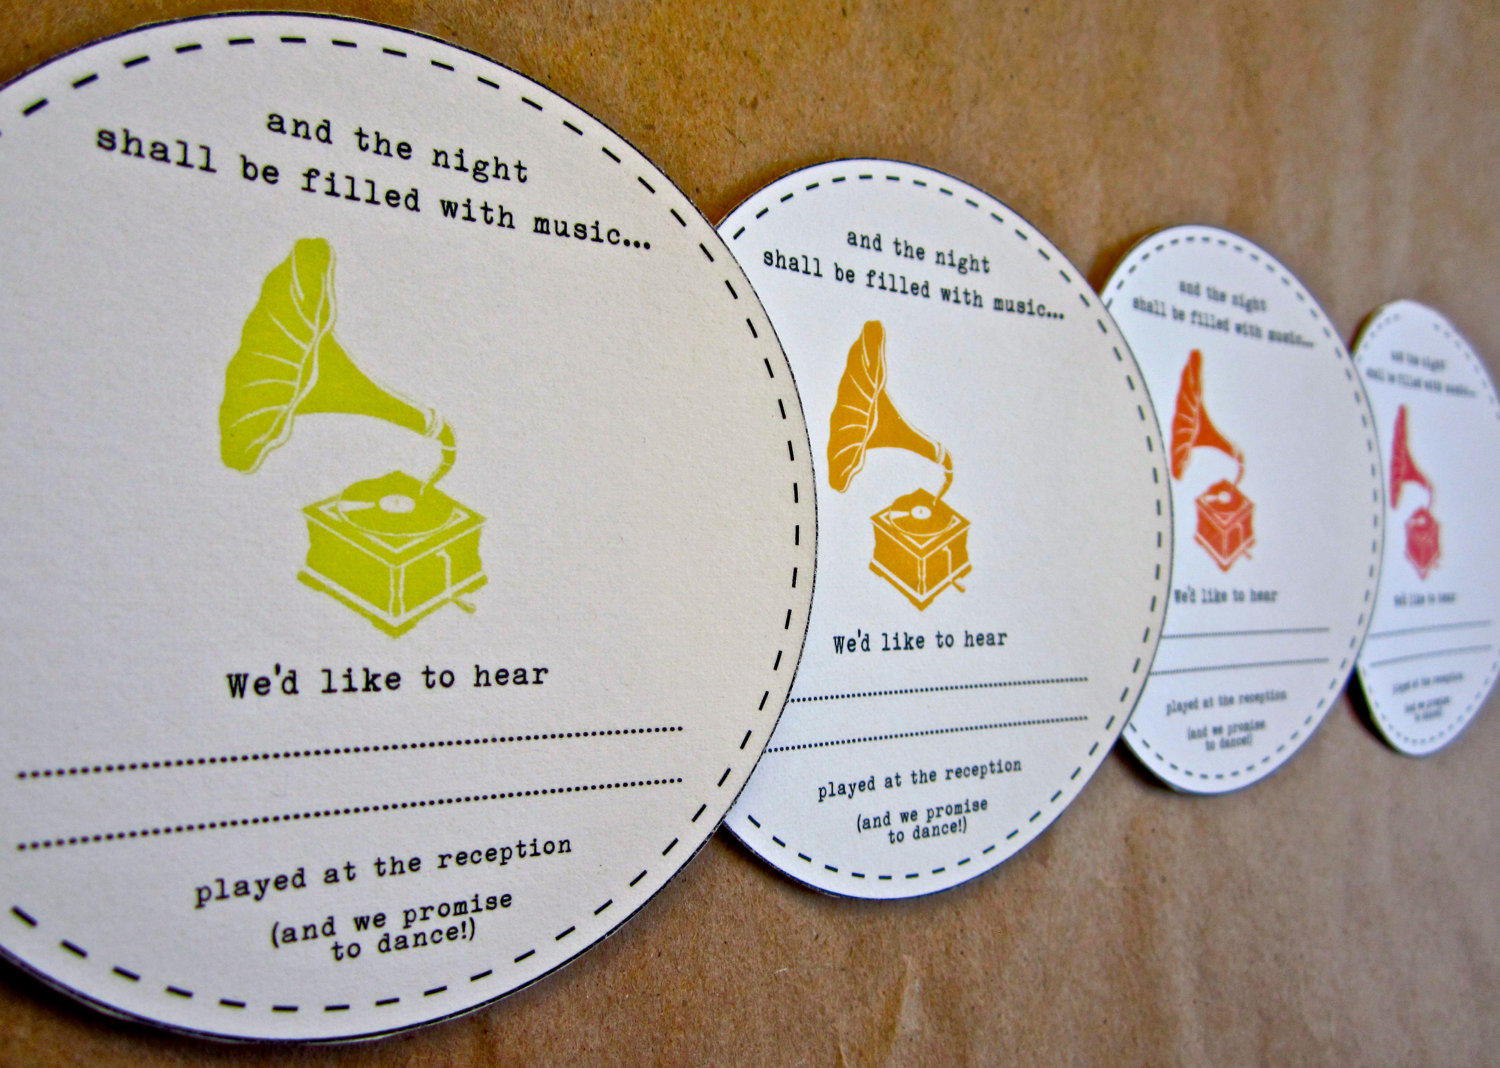 This is one of the latest trends in wedding invitations…asking for requests